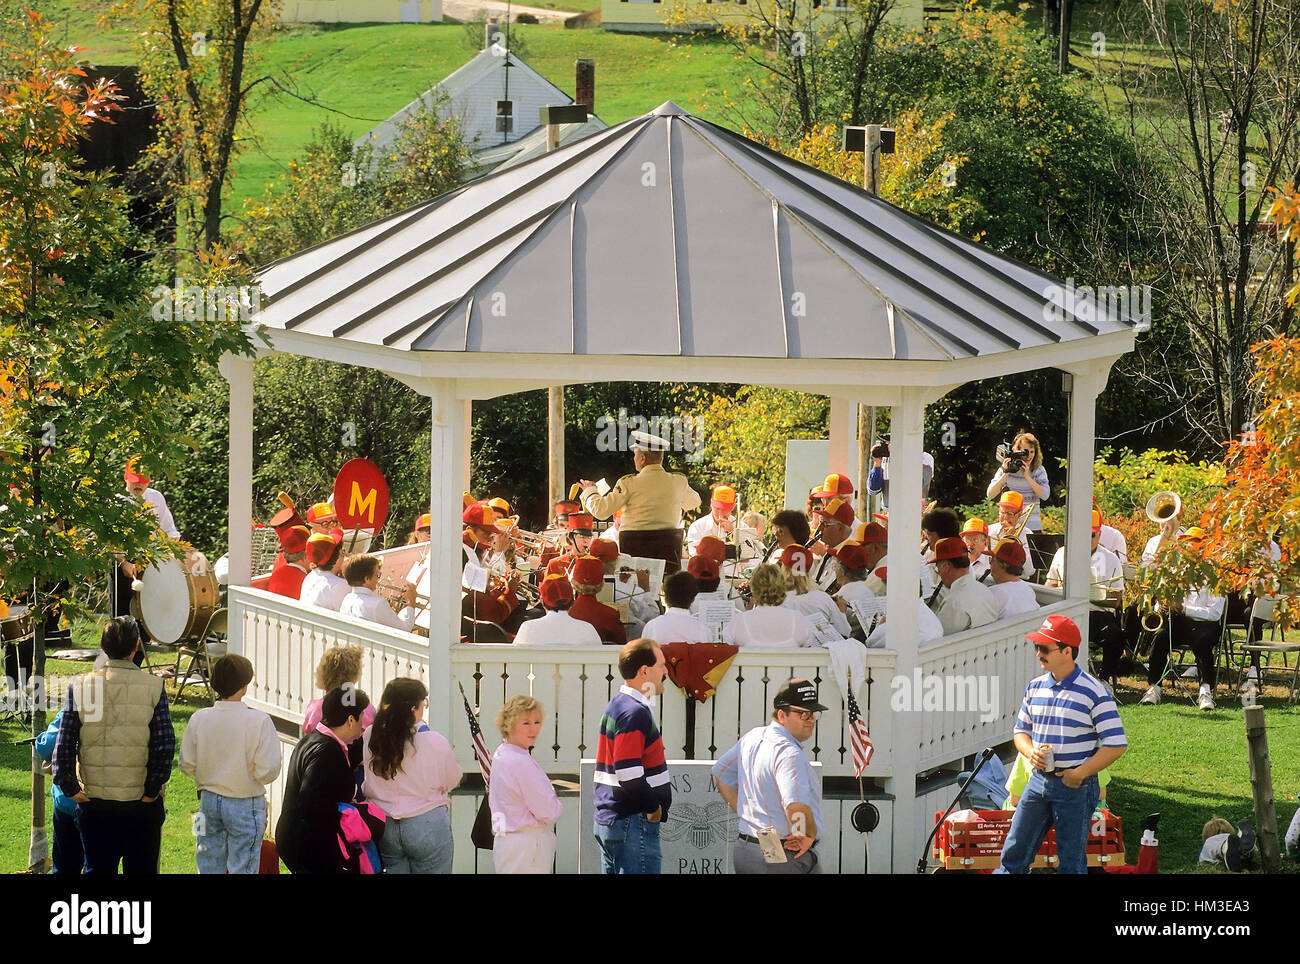 McLures Alumni Band play a concert under the band stand in Groton, VT, USA. Digital scan from slide. - Stock Image